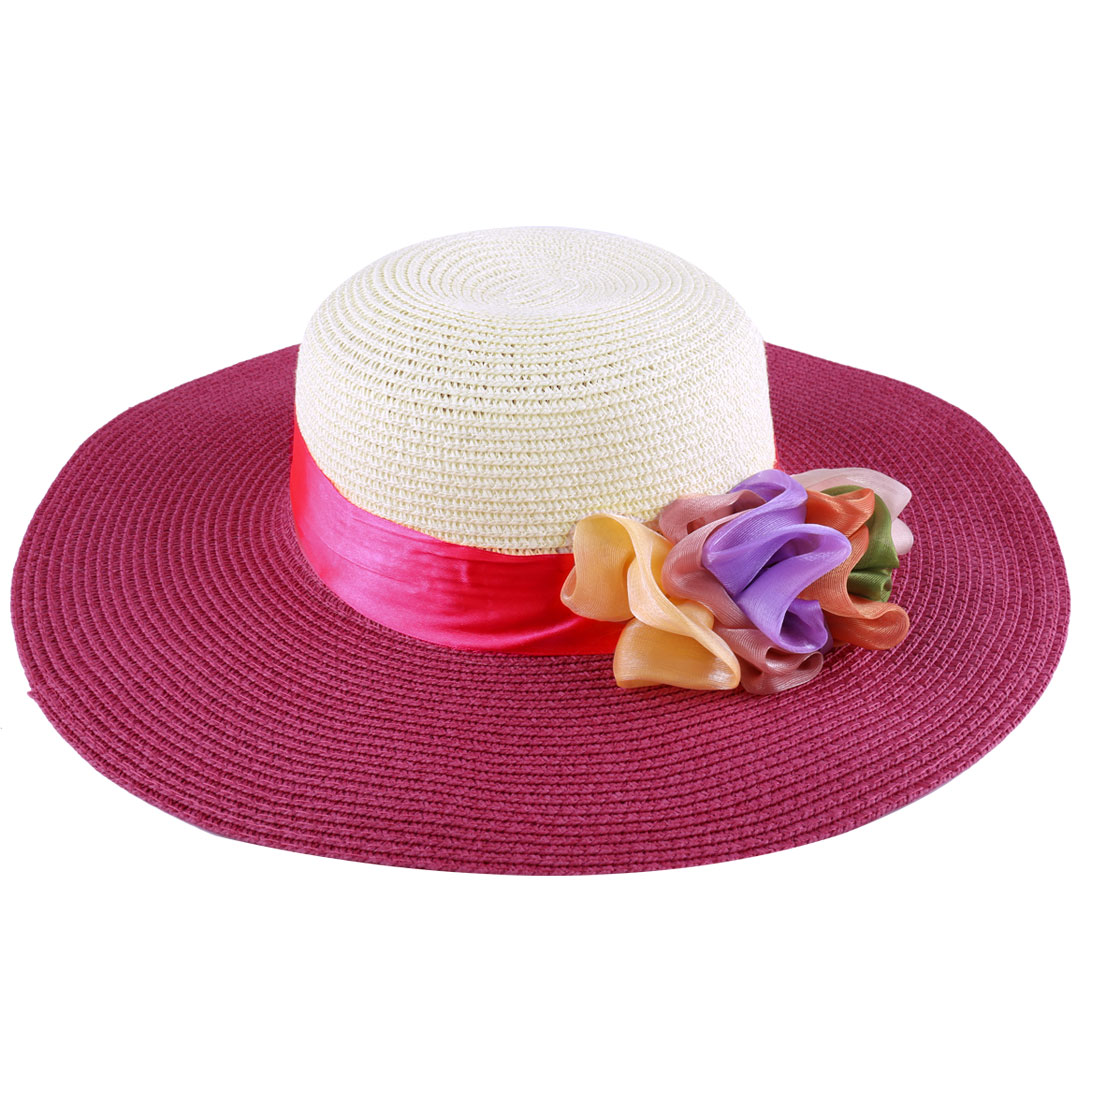 Woman Chic Fuchsia Off-White Two-Tone Manmade Flower Decor Wide Brim Staw Hat